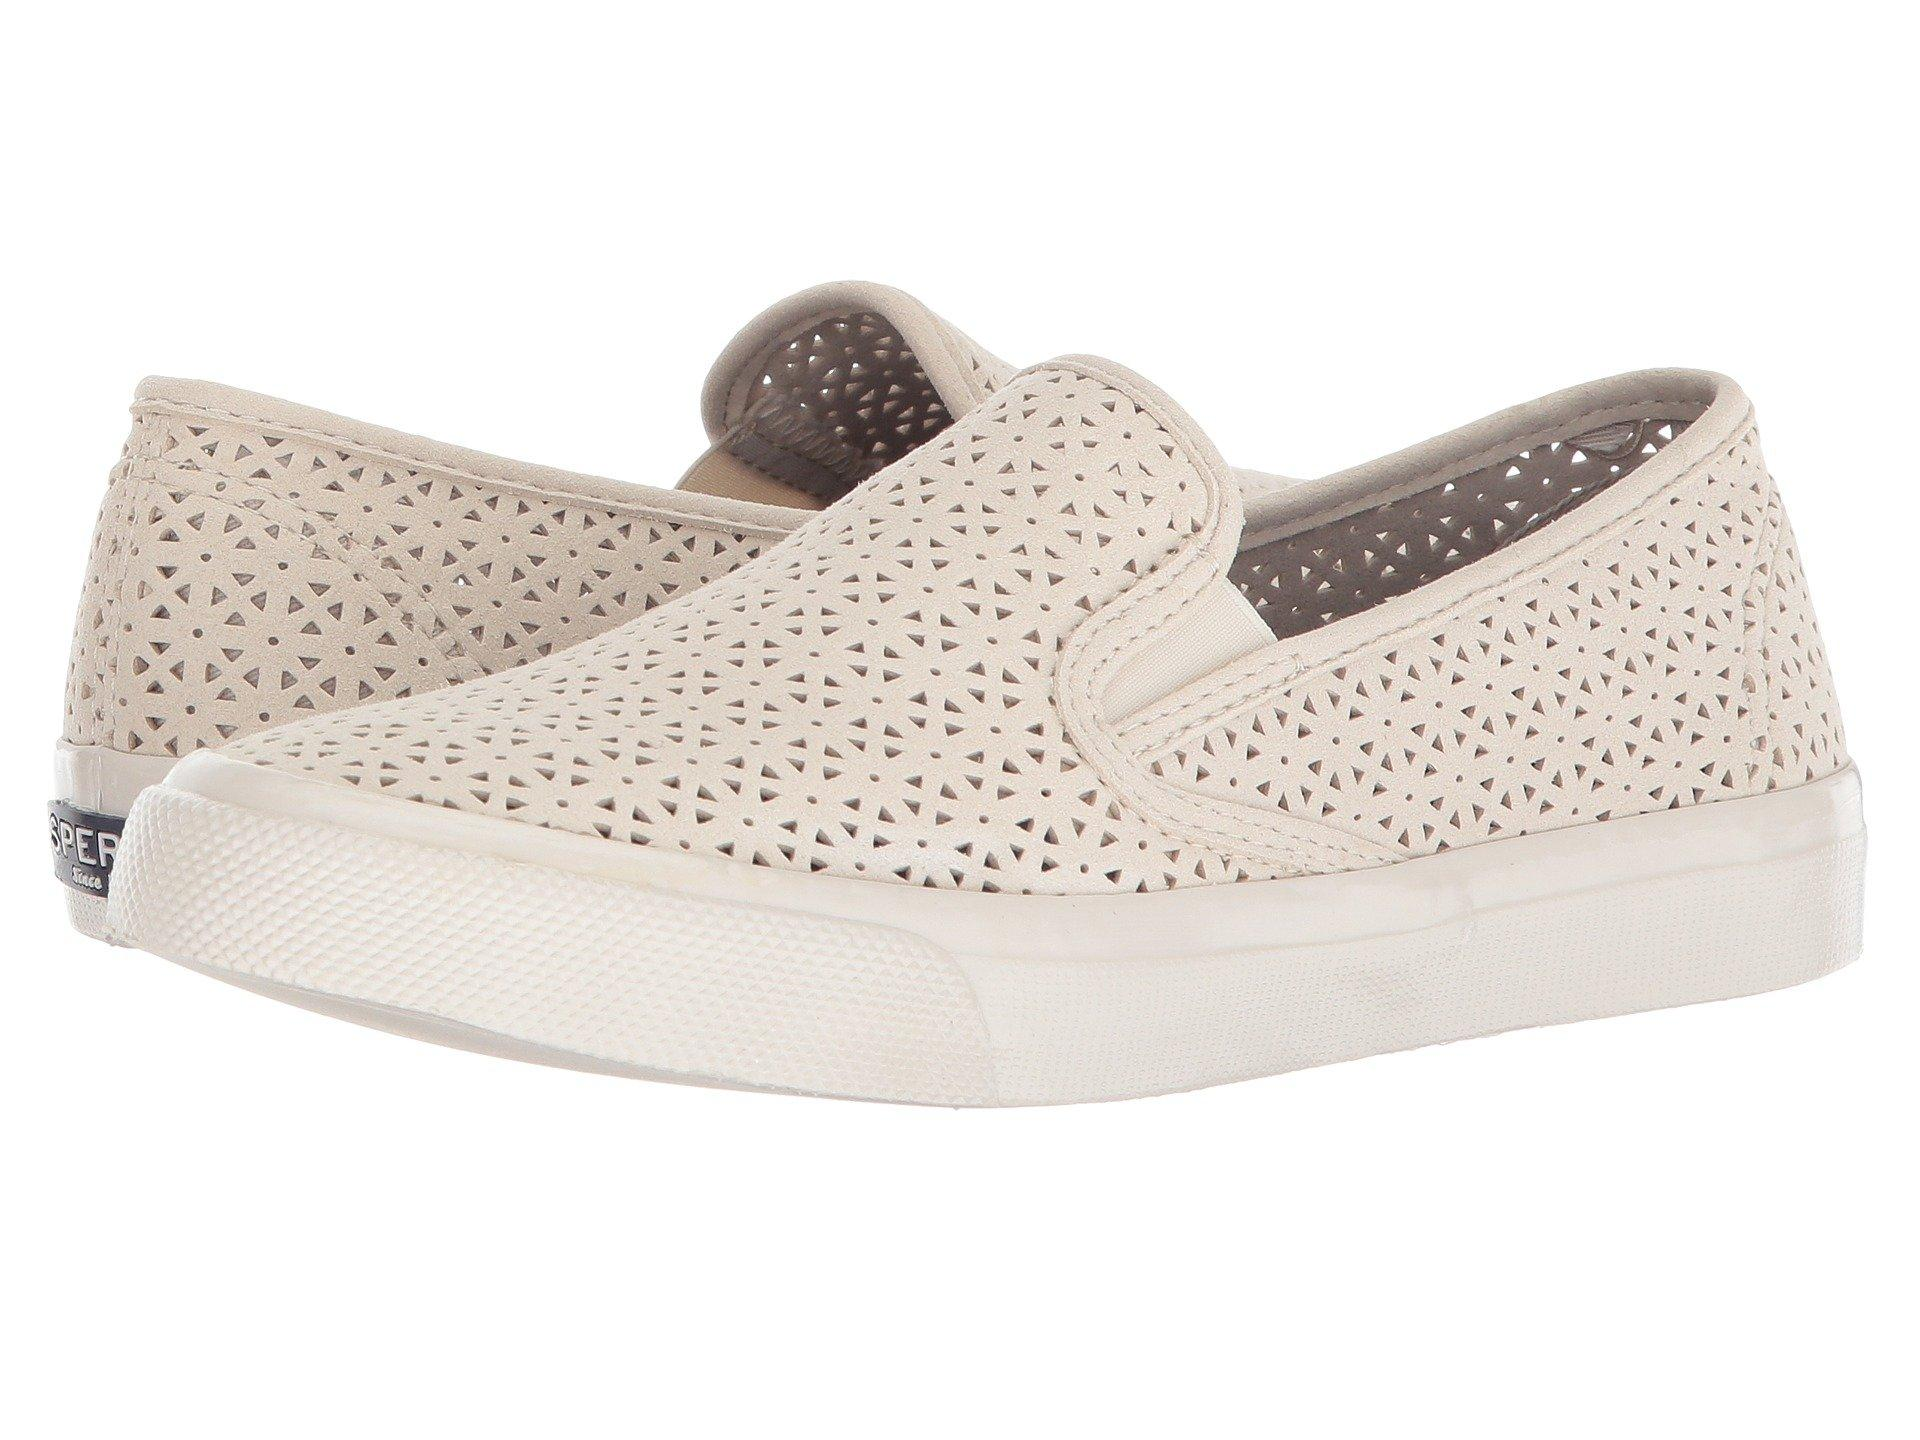 f3247971c046 Lyst - Sperry Top-Sider Seaside Nautical Perf in White